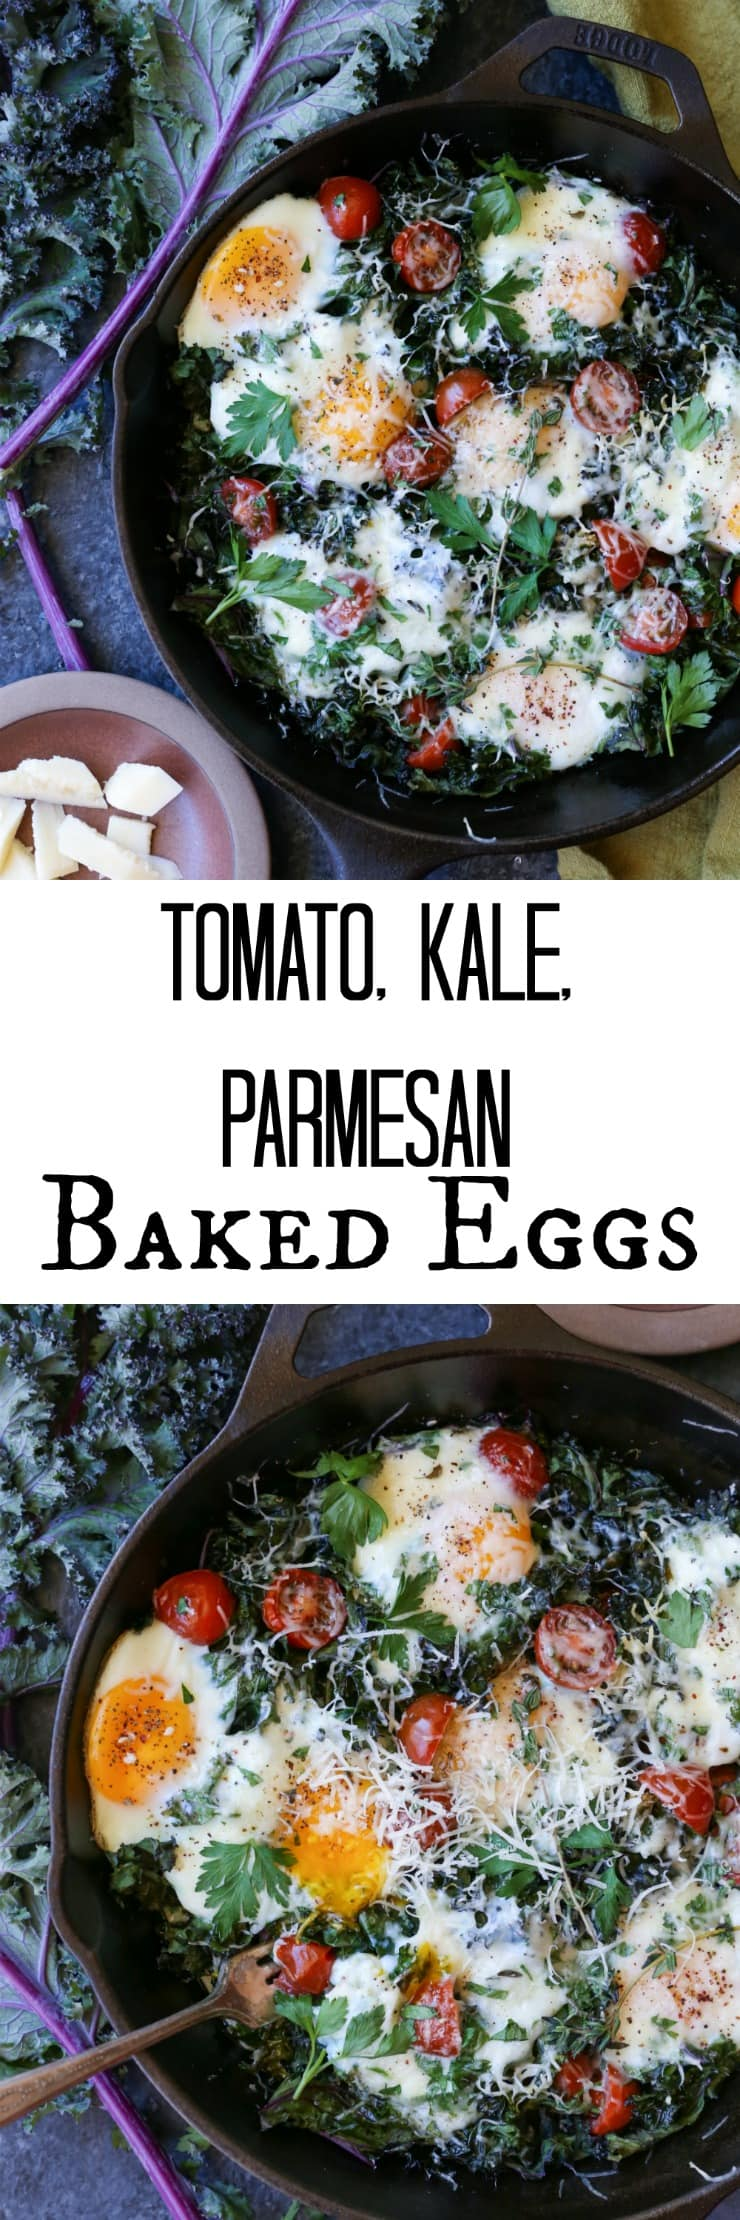 Tomato, Kale, and Parmesan Baked Eggs - a rustic, delicious, healthy vegetarian breakfast perfect for any day of the week